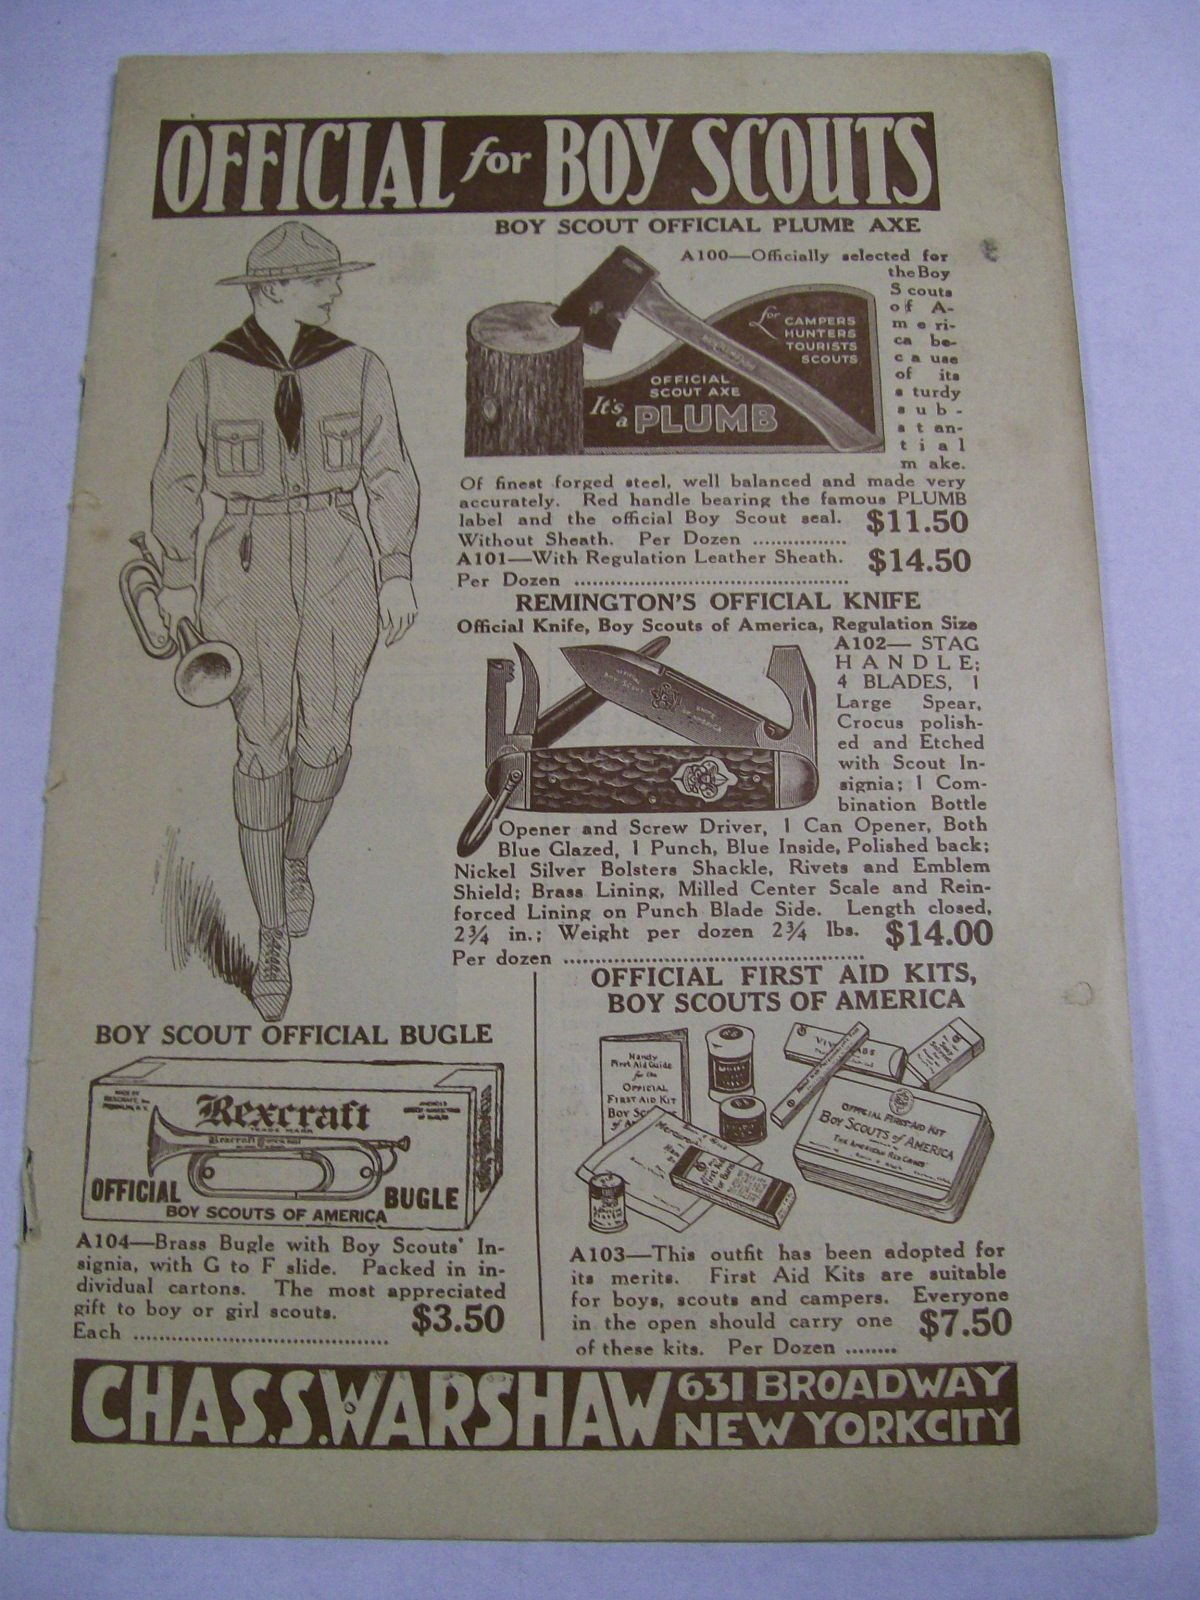 Official Boy Scout Catalog by Chas.S. Warshaw NY. 1930's